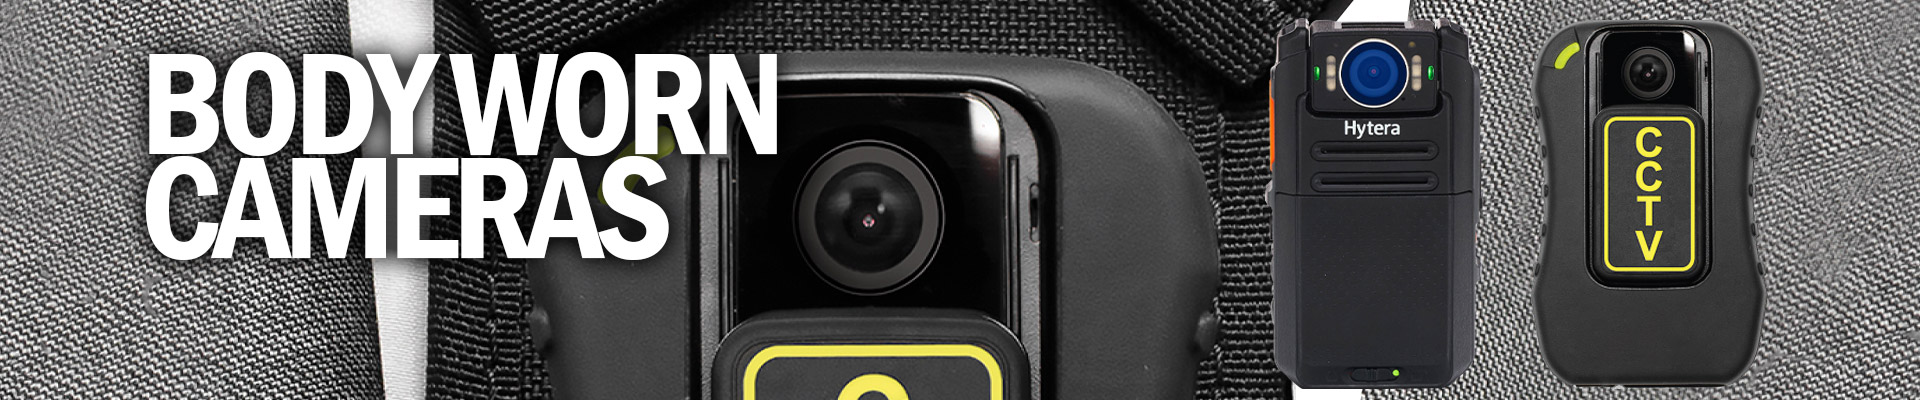 900cam body worn camera images banner